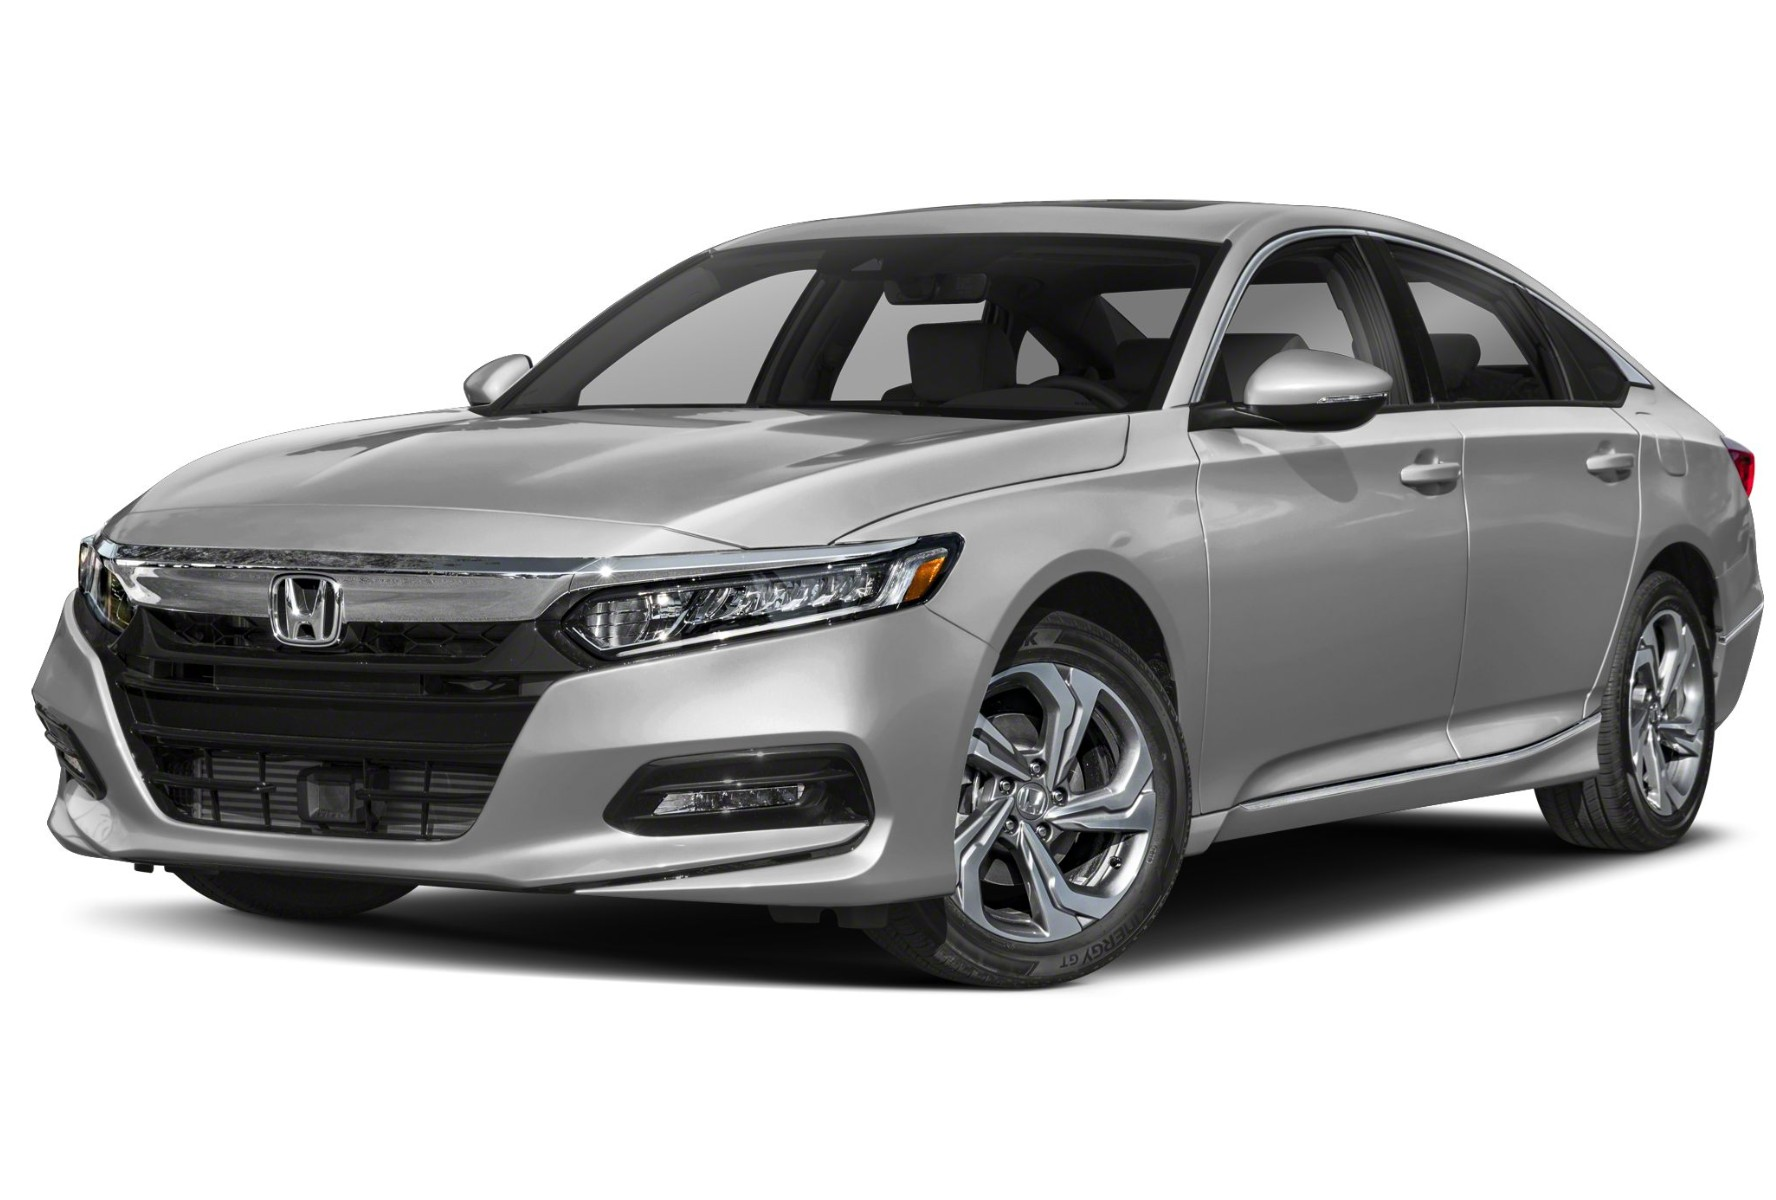 The 2019 Honda Accord EX-L for sale at Headquarter Honda in Clermont, FL